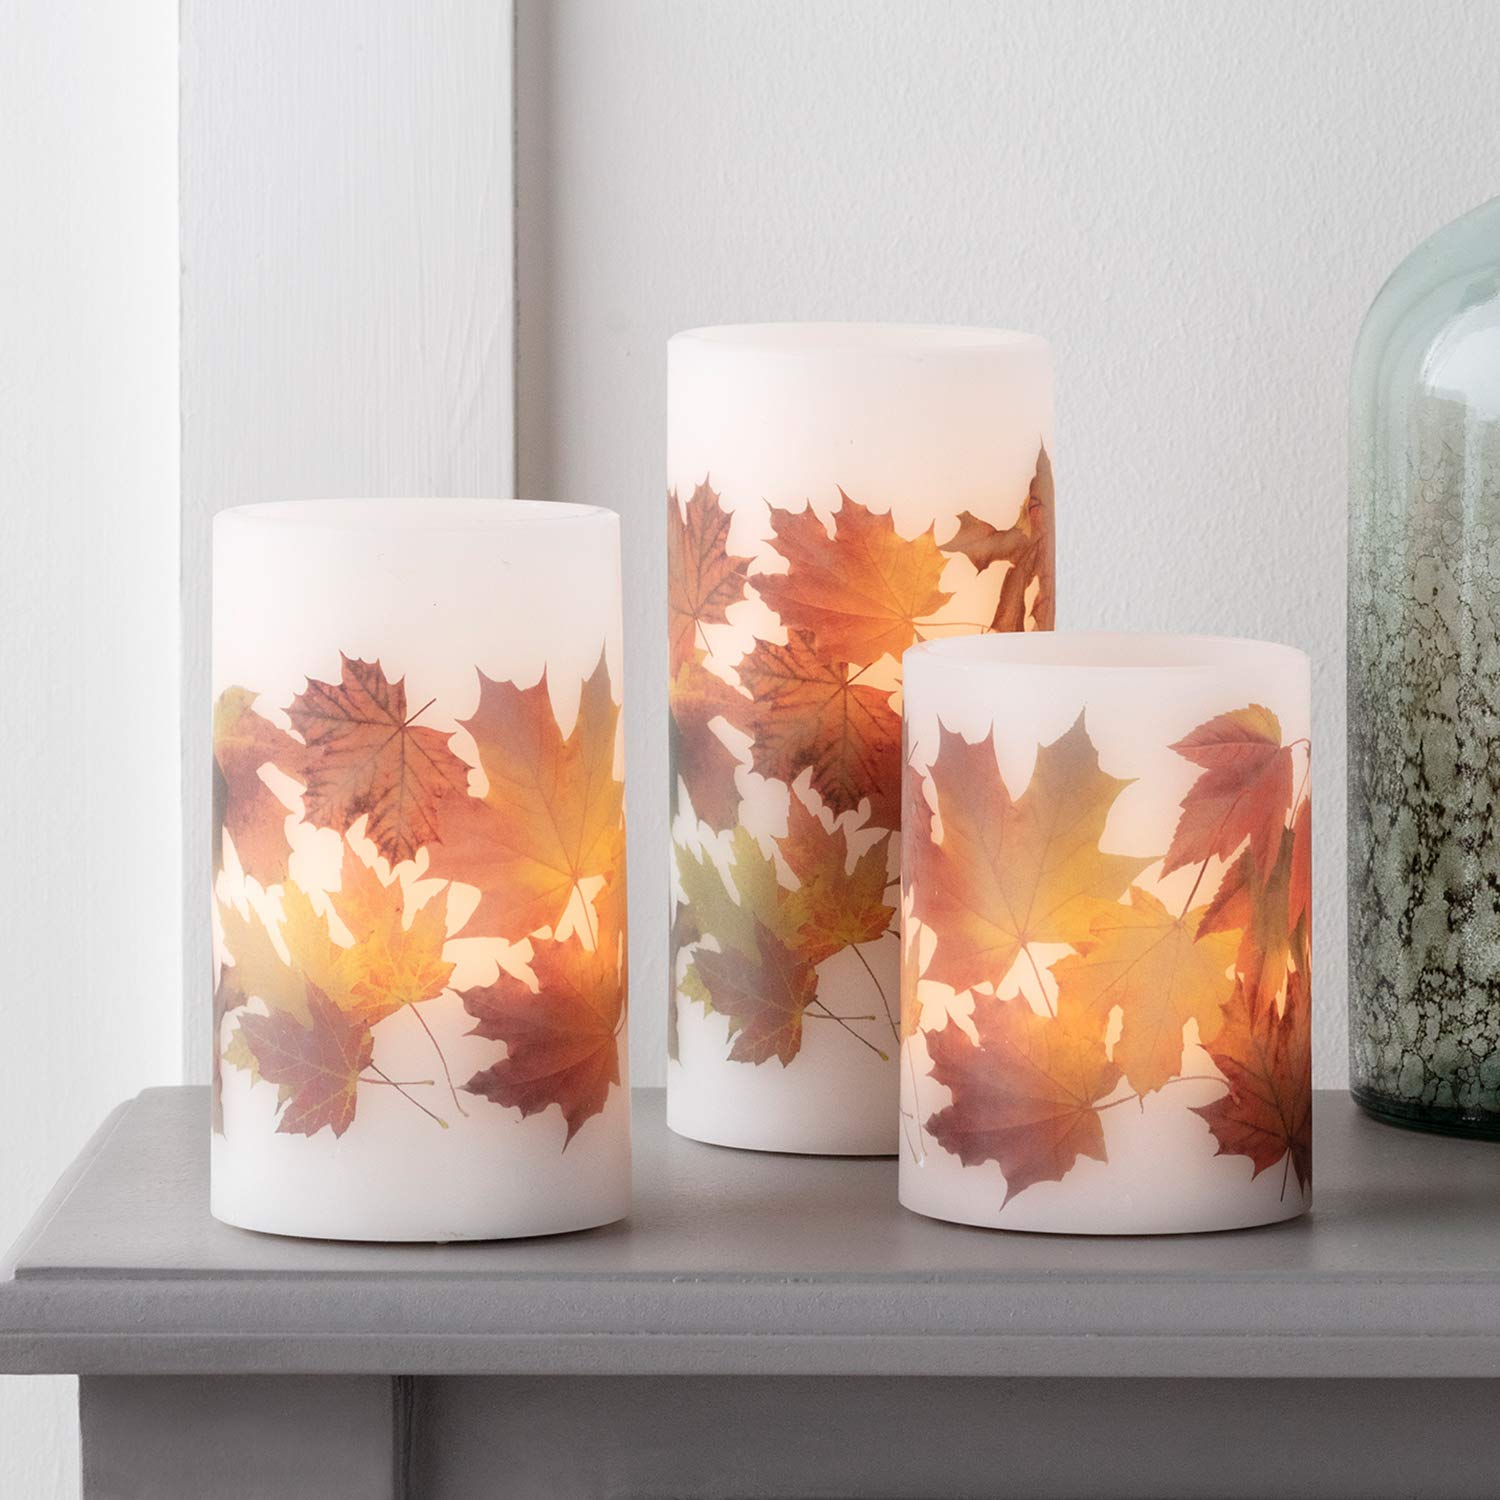 Lights4fun, Inc. Set of 3 Fall Leaf Wax Battery Operated Flameless LED Thanksgiving Pillar Candles with Remote Control by Lights4fun, Inc.